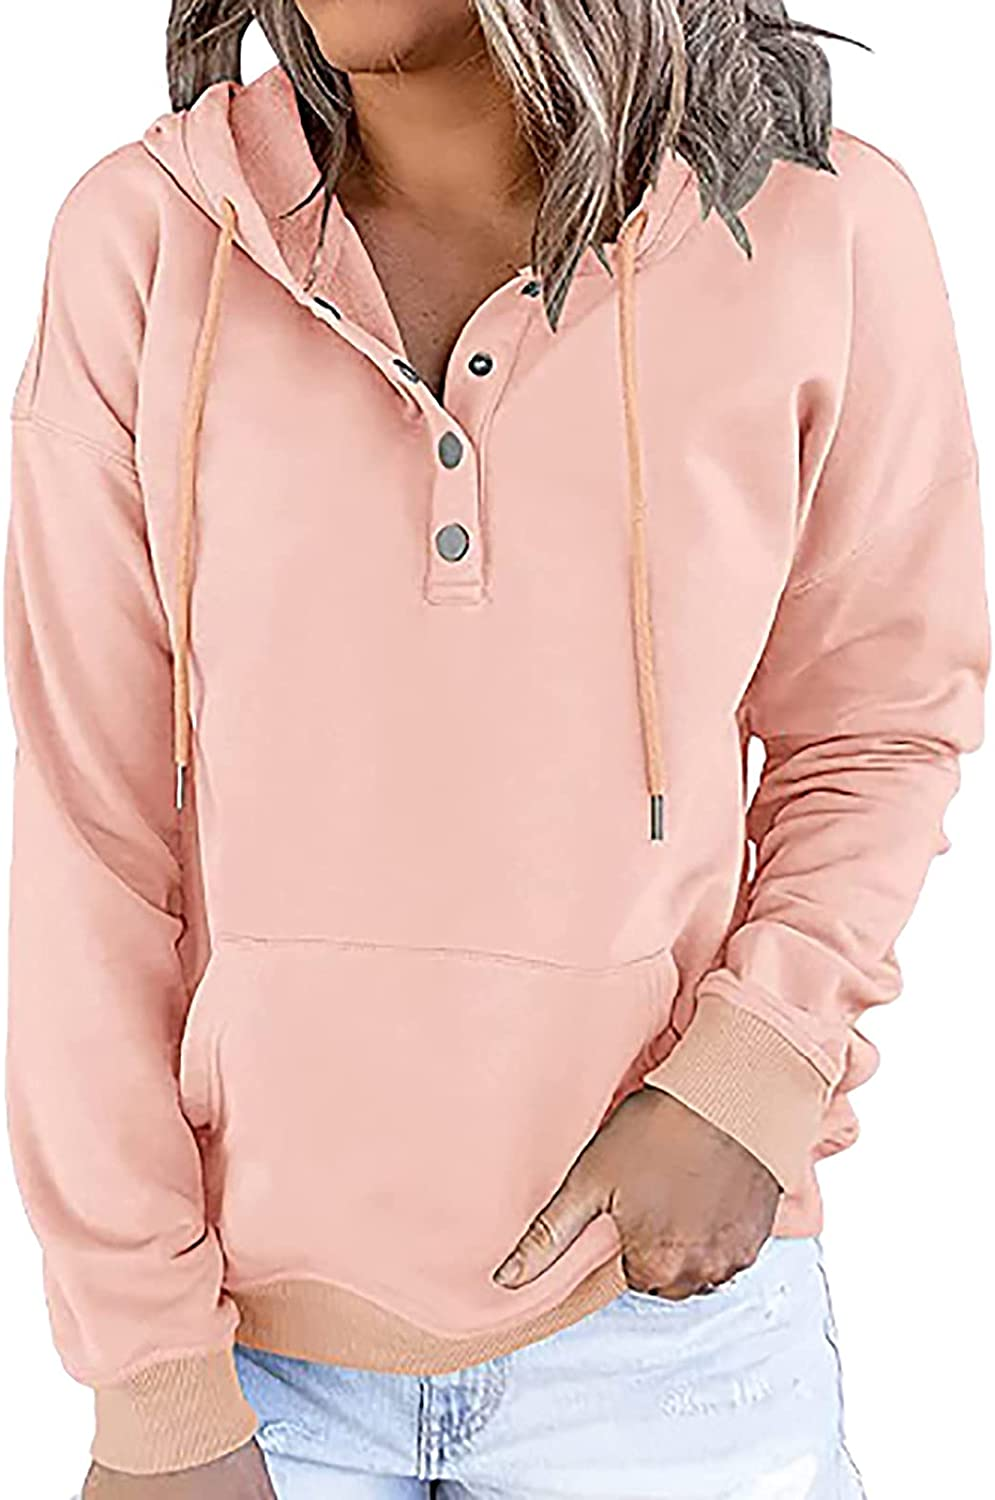 Button Hoodies for Women Winter Casual Drawstring Pullover Long Sleeve Fashion Tops Trendy Blouses T Shirt Tee